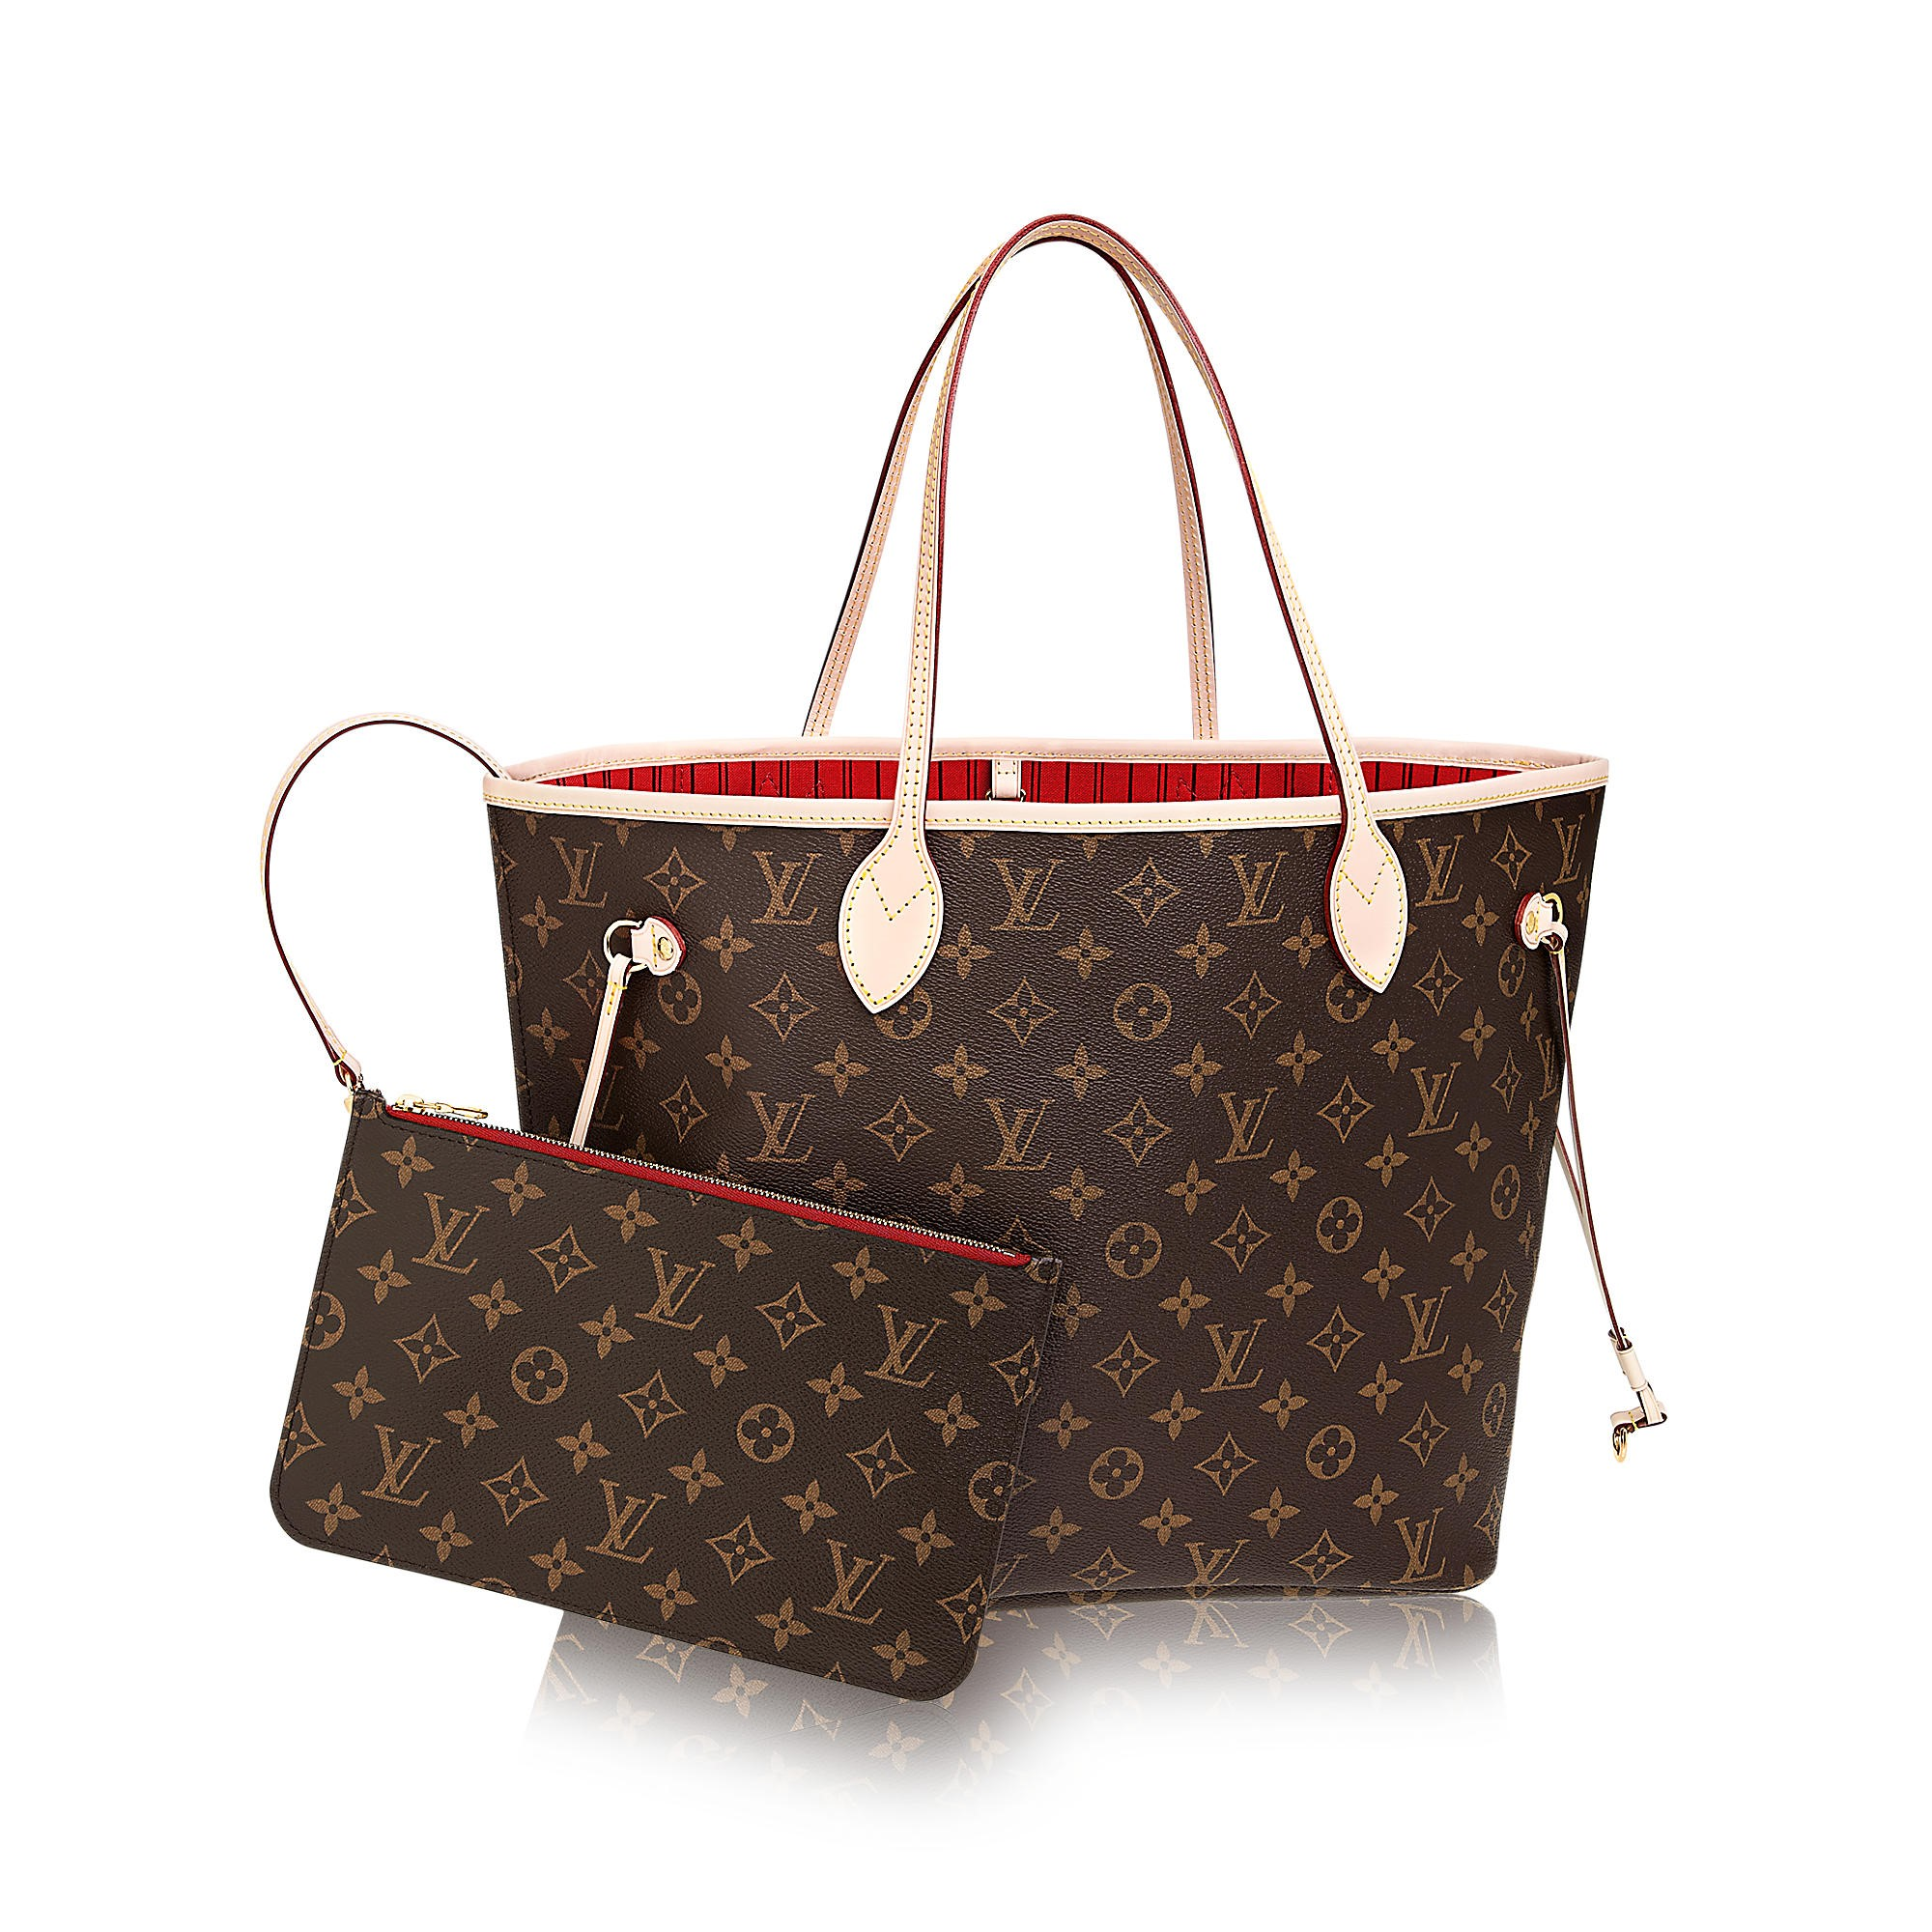 The Louis Vuitton Keepall S